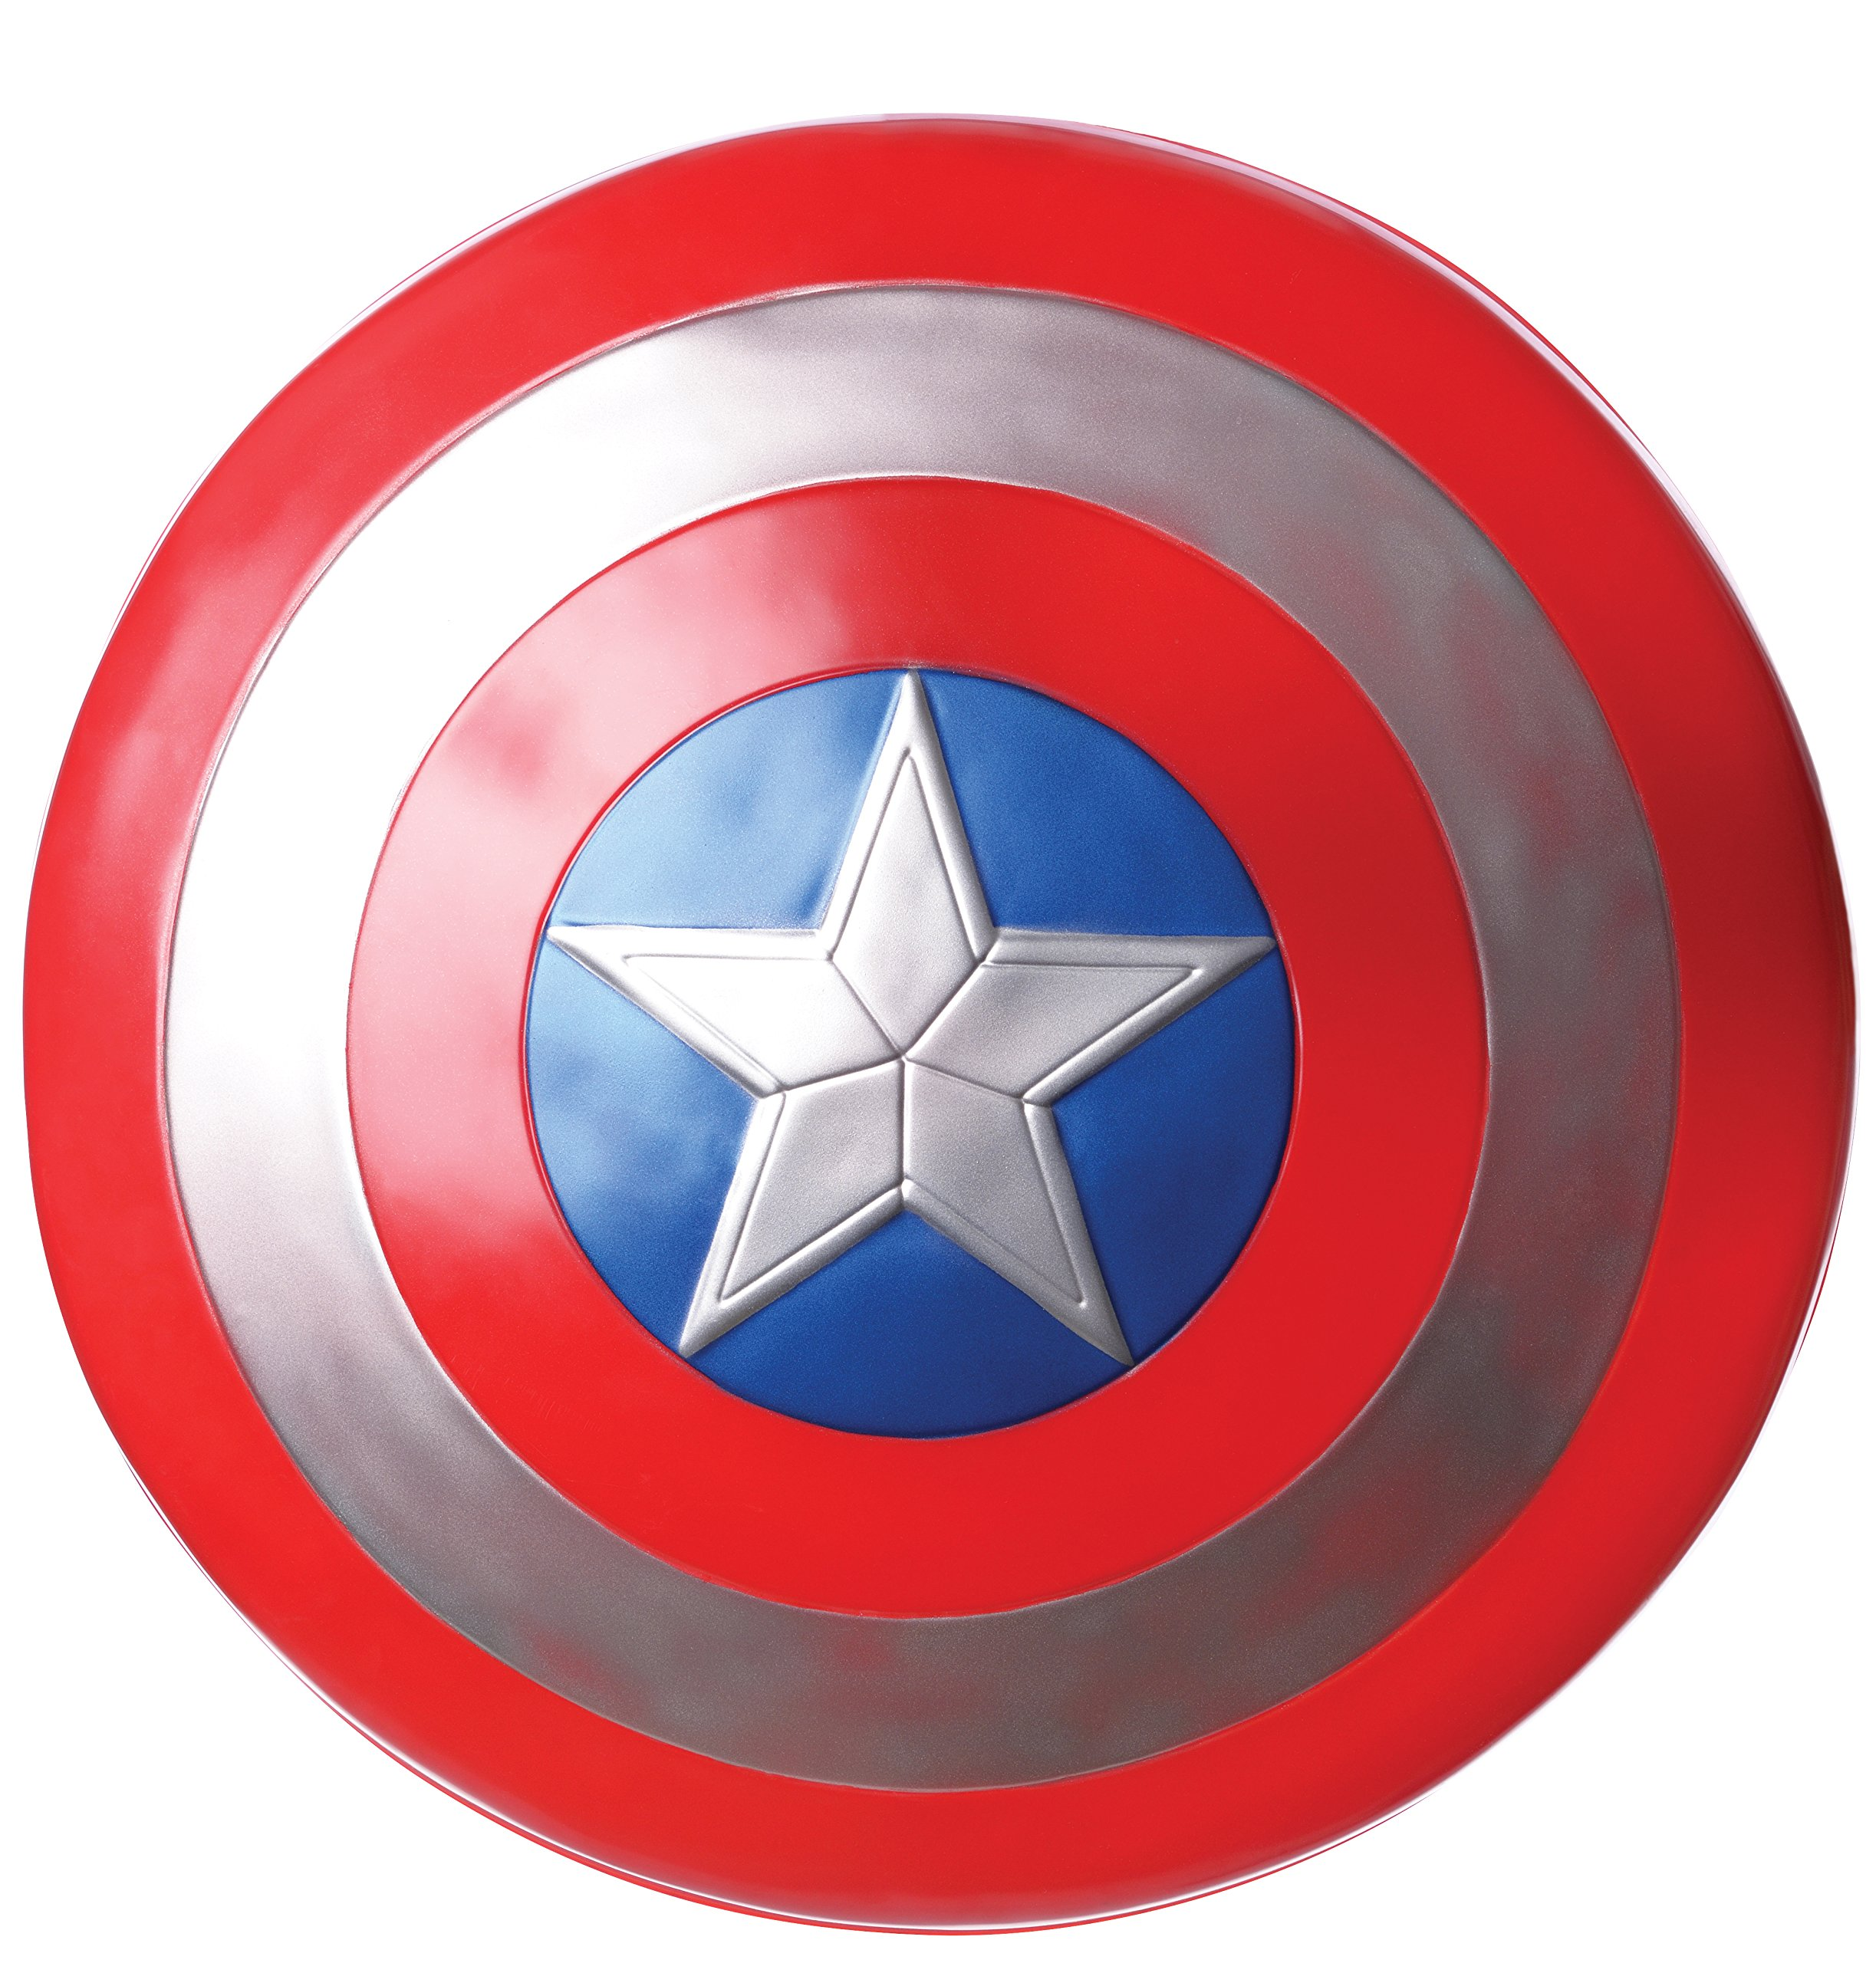 Rubie's Costume Co Avengers 2 Age Of Ultron Captain America 24-Inch Shield, Multi, One Size by Rubie's